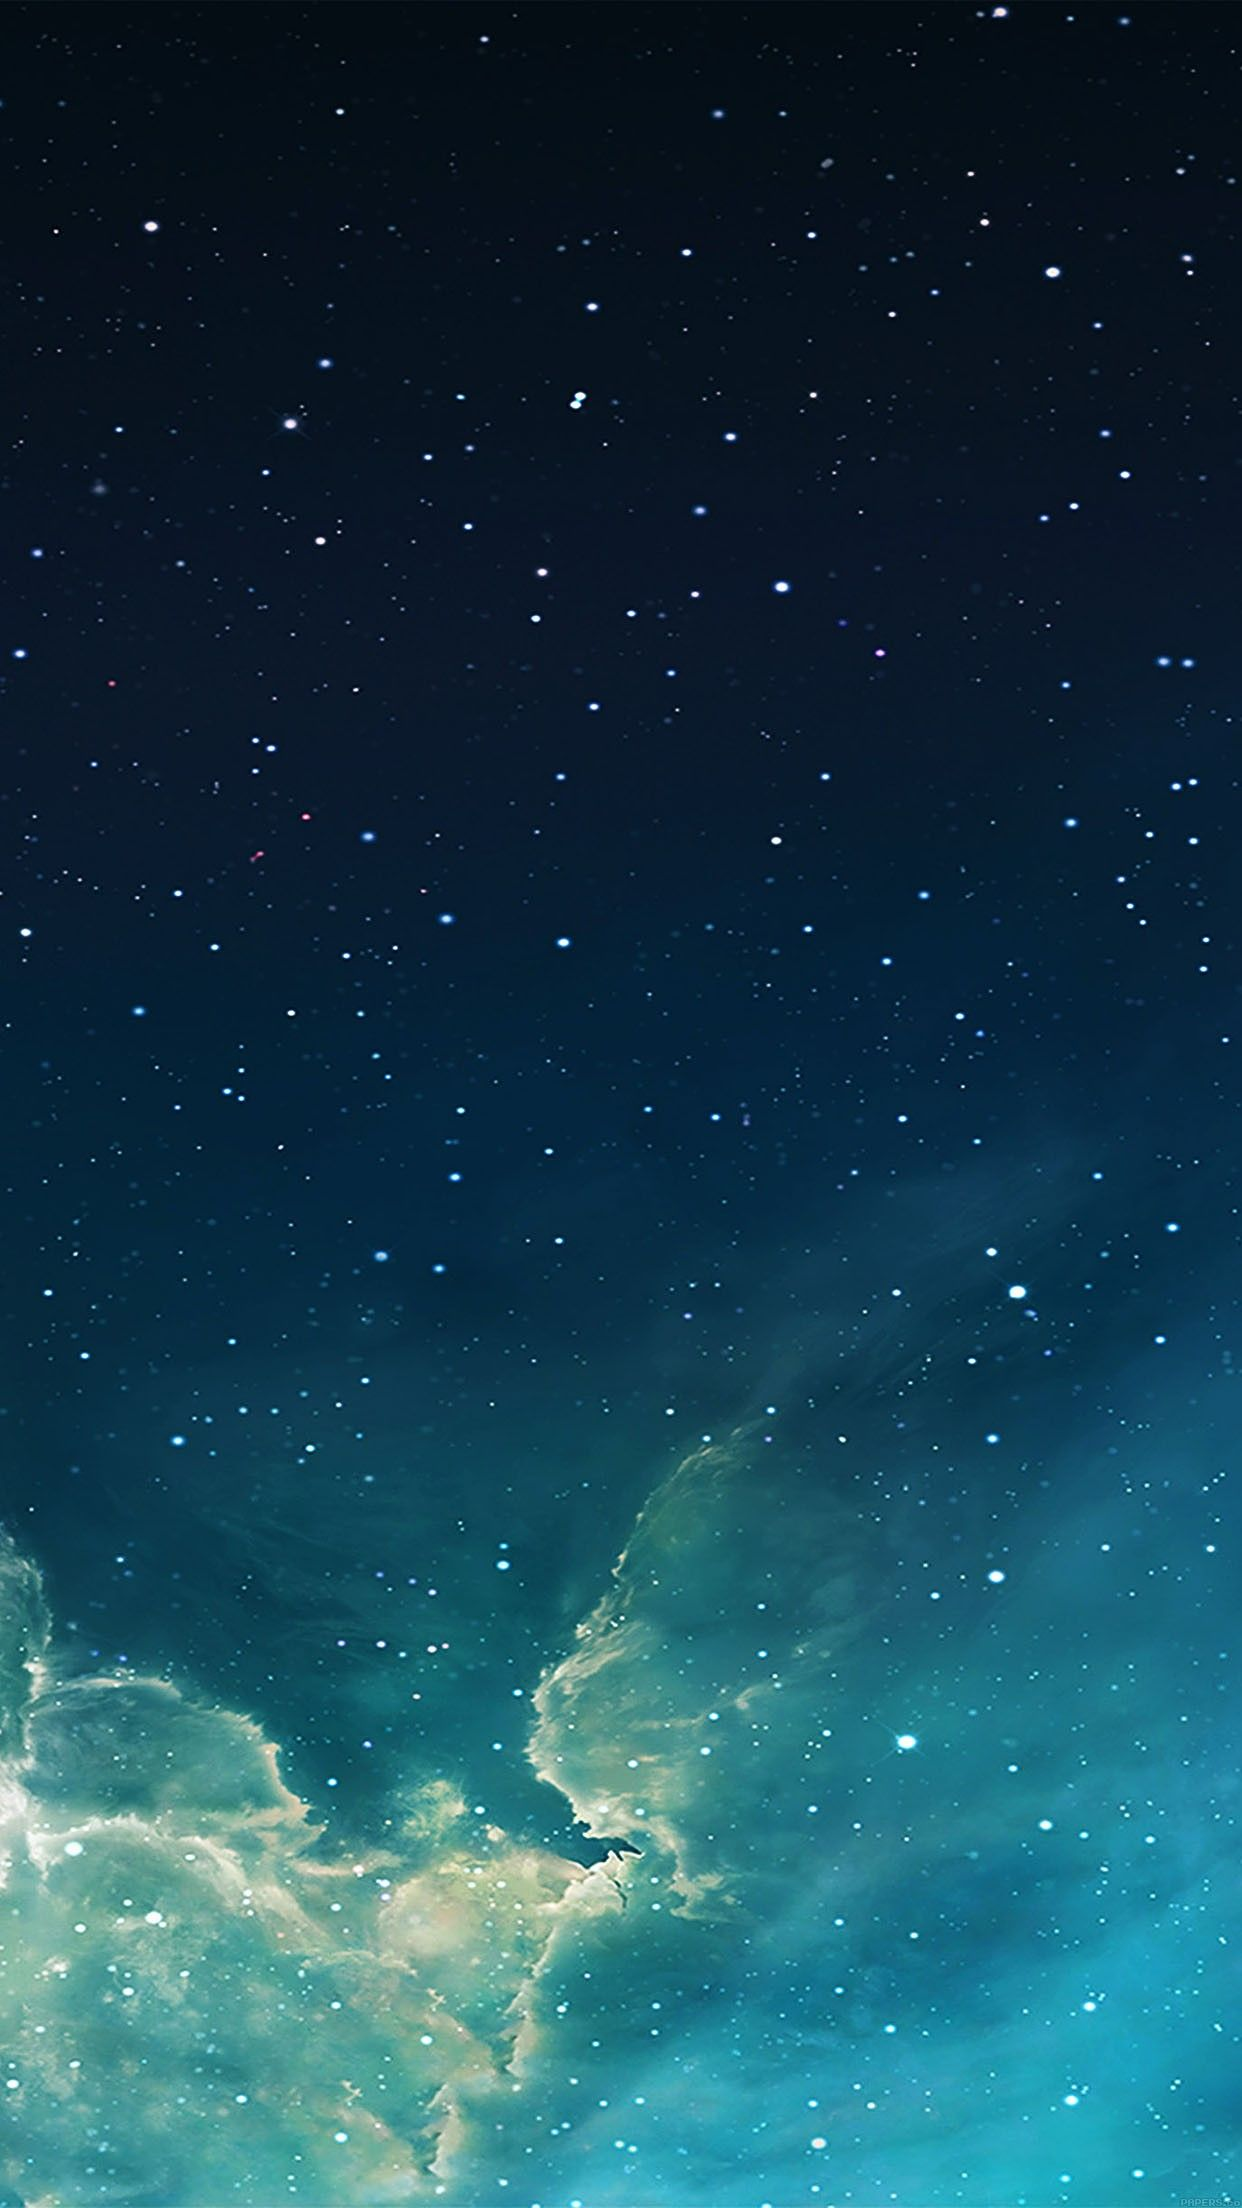 wallpaper galaxy blue  starry star sky iphone  plus wallpapers  dailybest…. wallpaper galaxy blue  starry star sky iphone  plus wallpapers